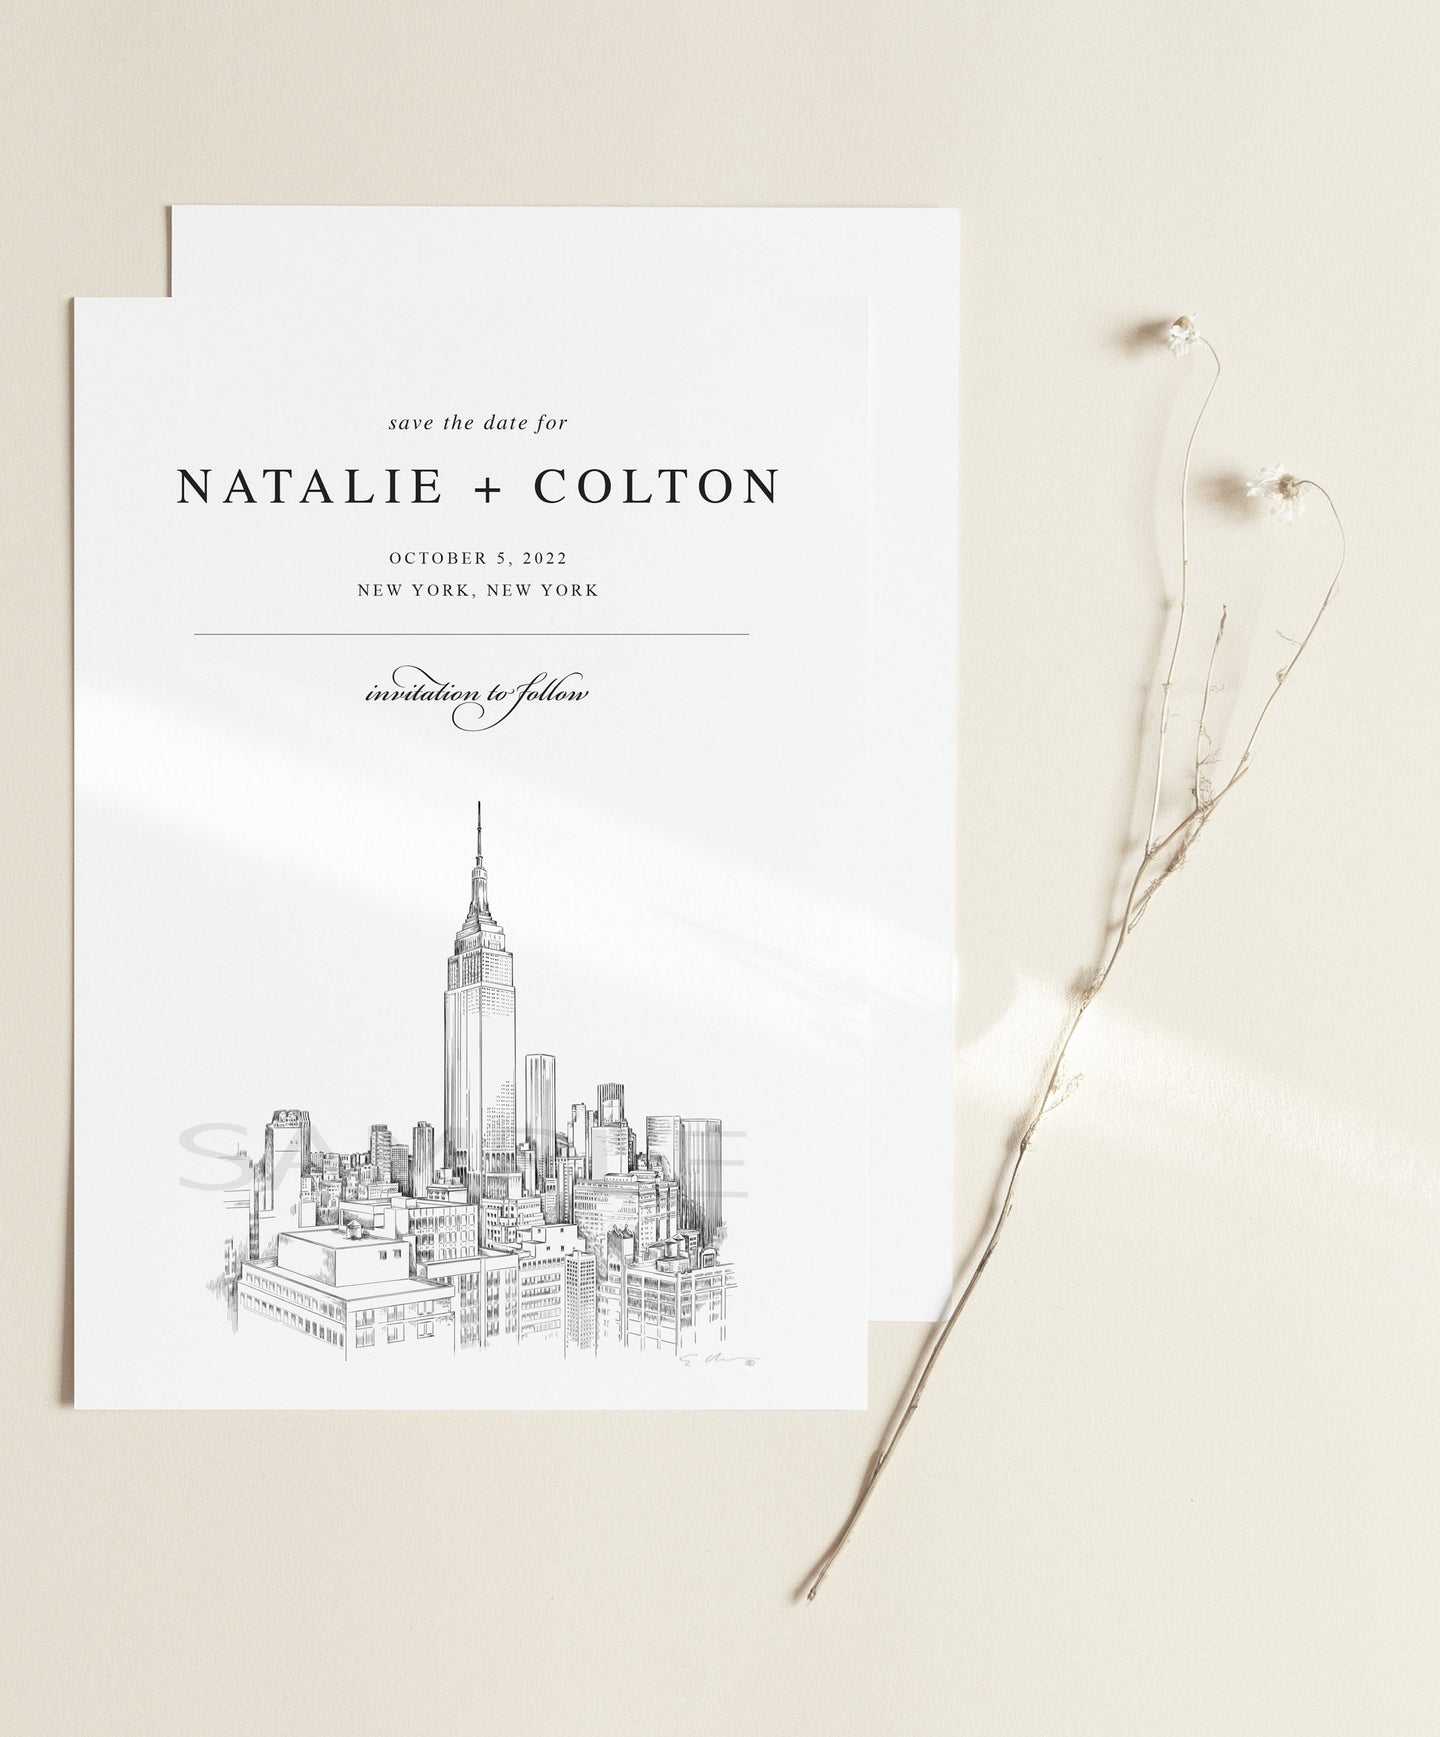 New York City Skyline Save the Date Cards, Wedding Save the Dates, Alabama, NYC, STD, NY Wedding (set of 25 cards and envelopes)